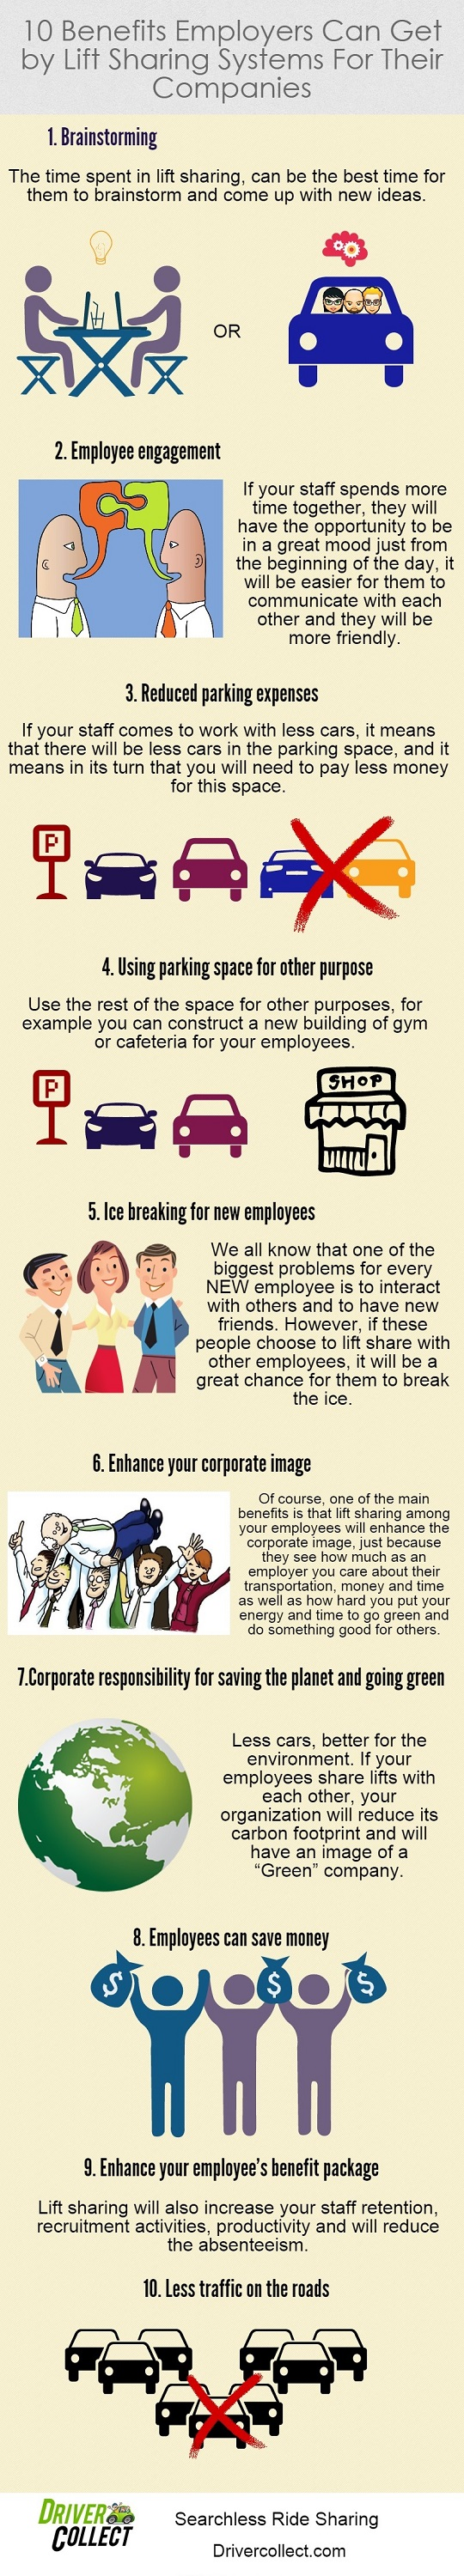 Lift Sharing: 10 Benefits Employers Can Get For Their Companies